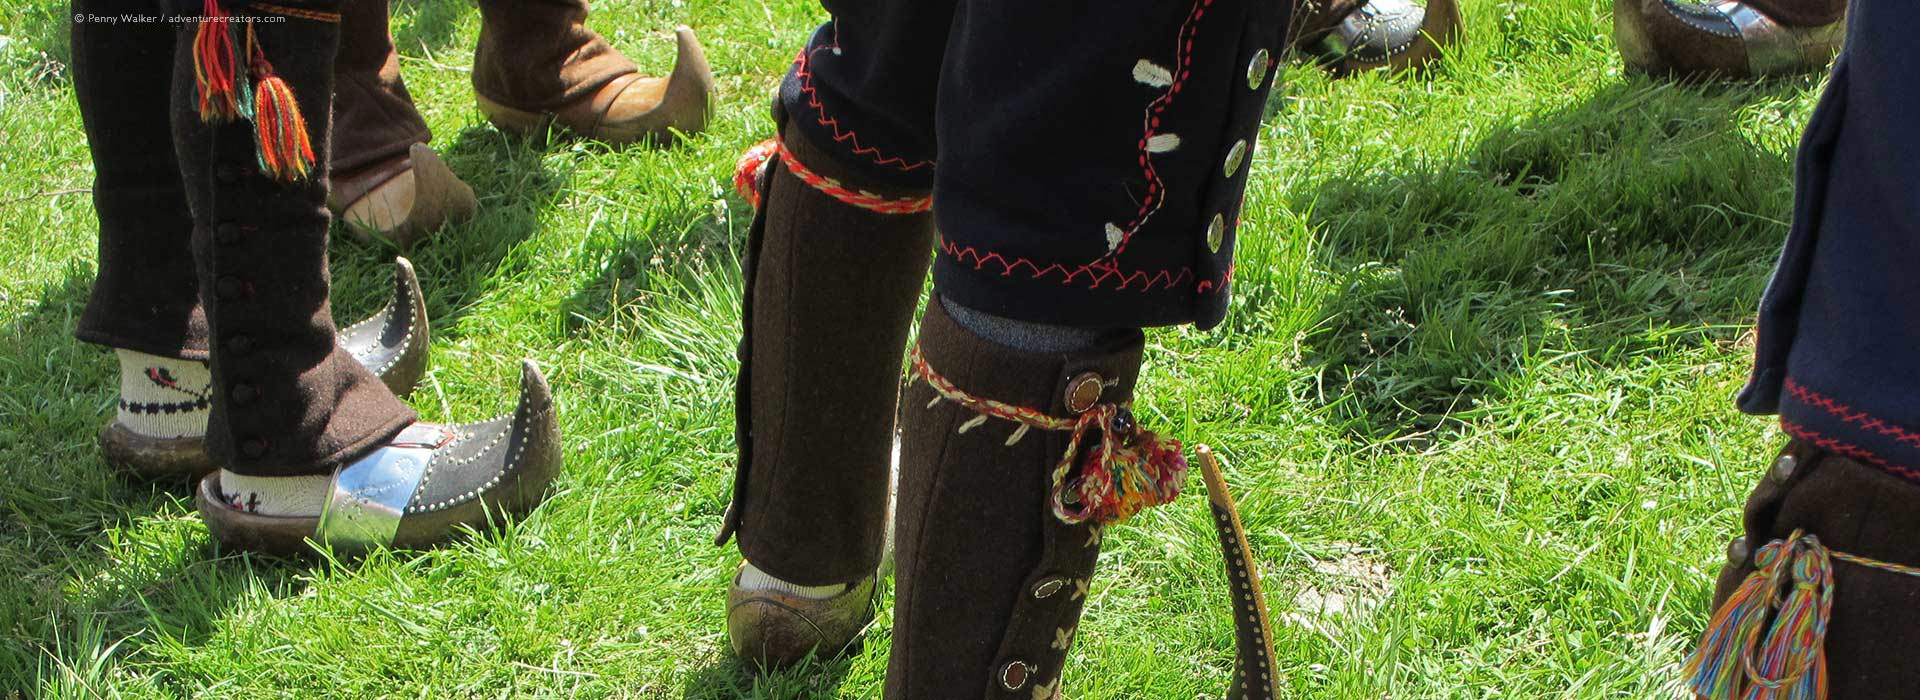 Traditional clogs during summer transhumance festival in French Pyrenees.